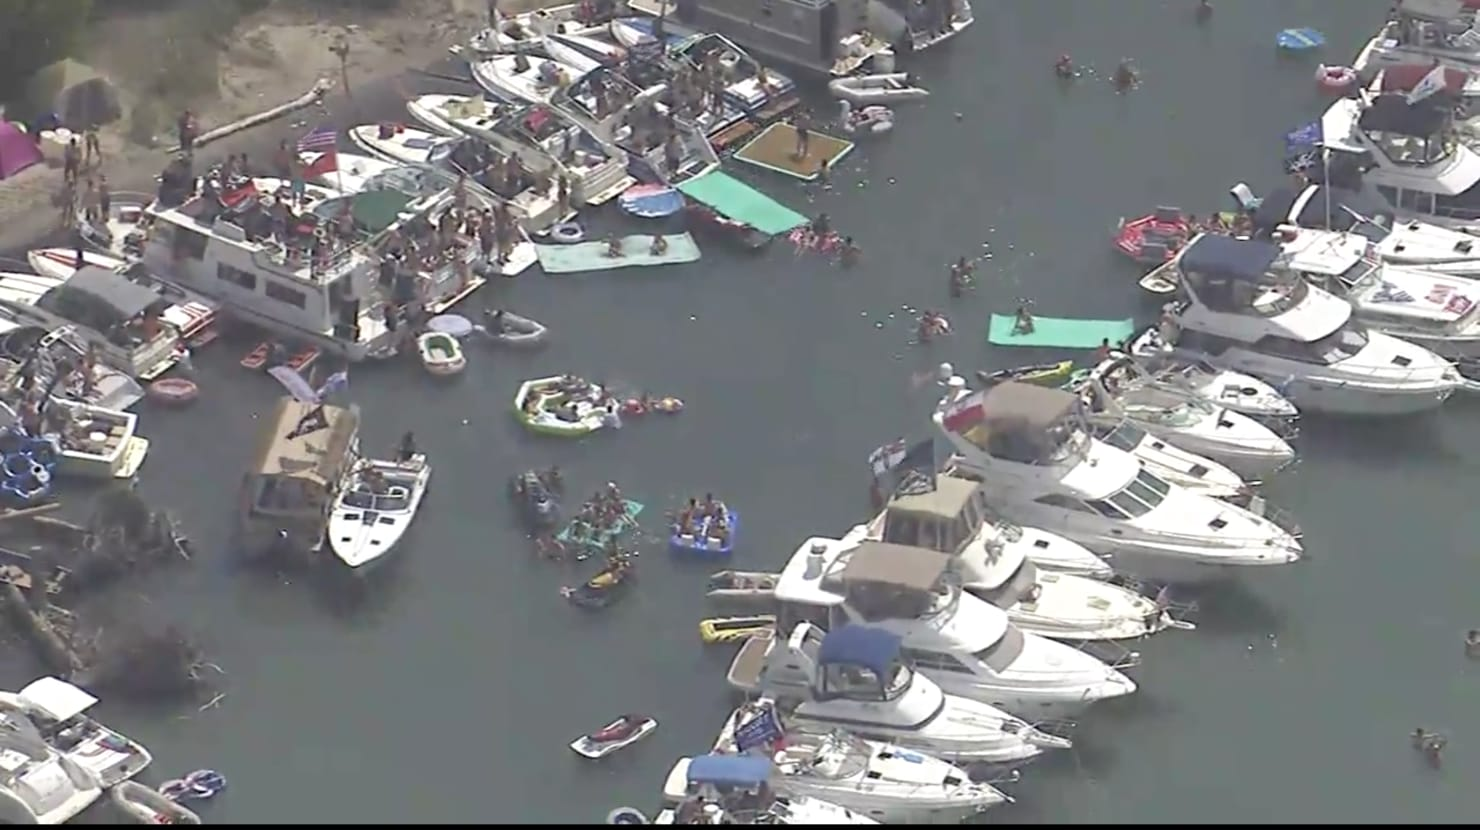 Thousands Gather for Michigan Boat Party That Officials Said They Couldn't Stop